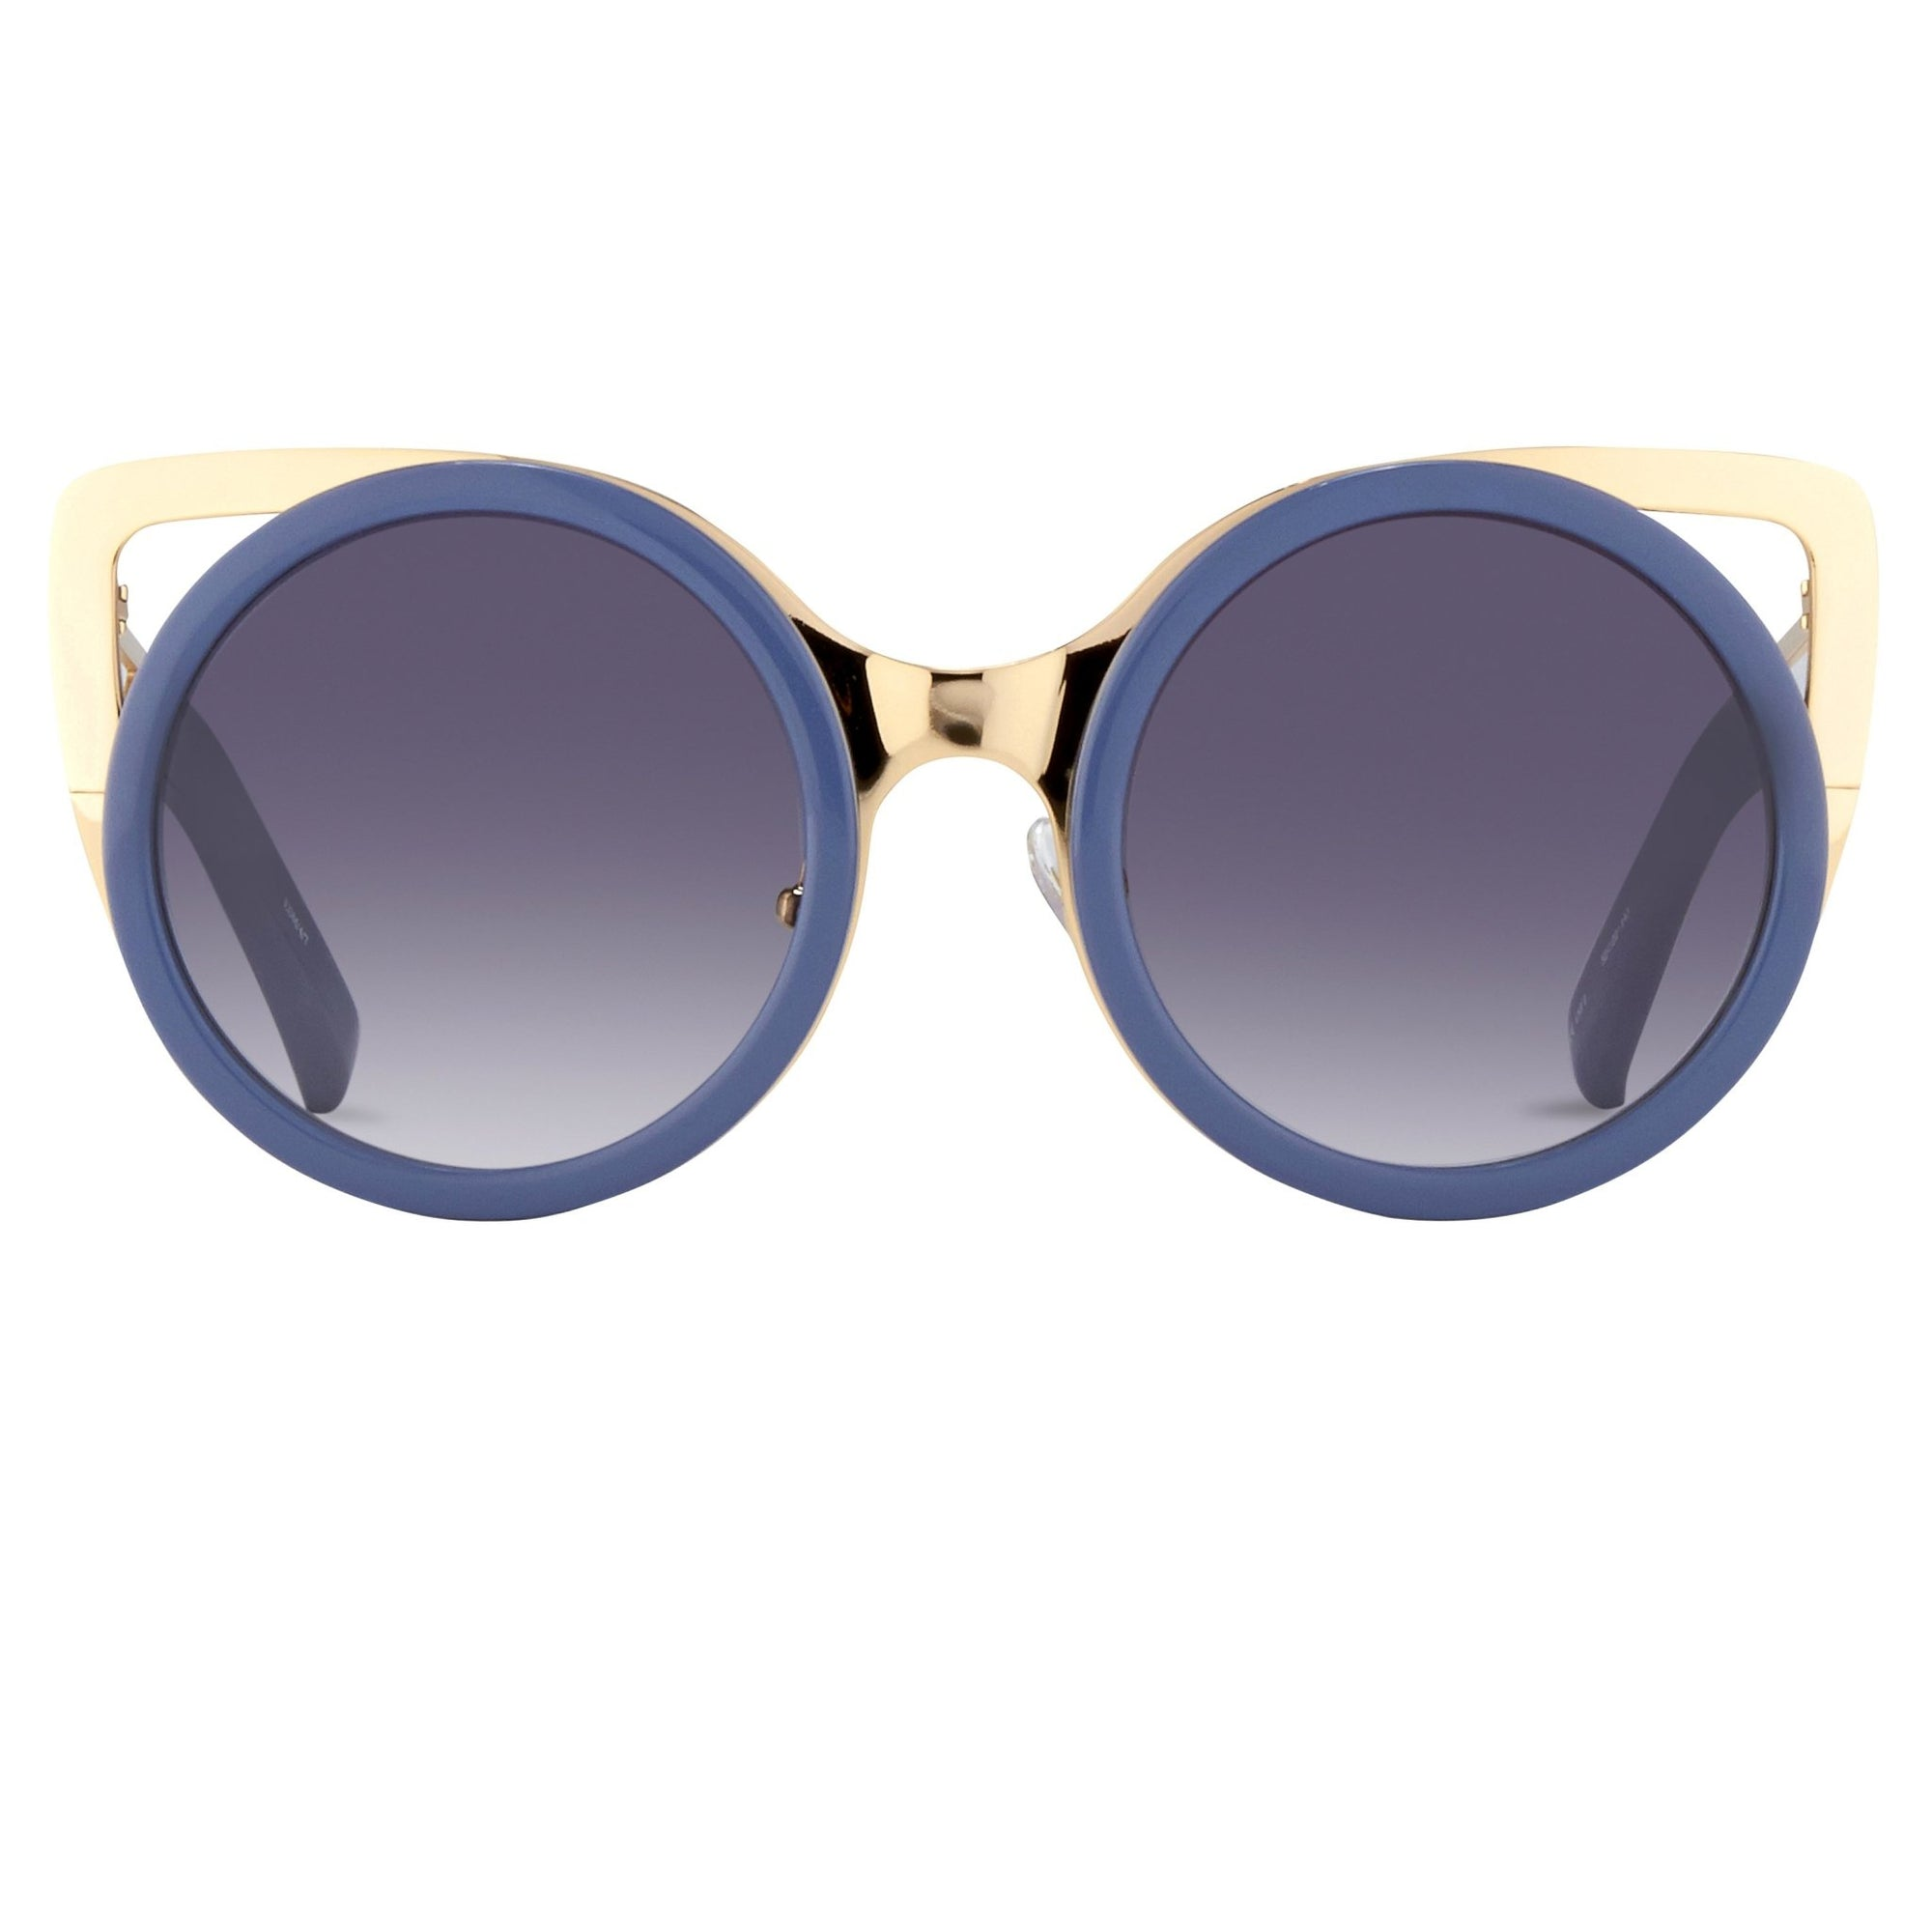 Erdem Women Sunglasses Cat Eye Slate Blue Light Gold with Grey Graduated Lenses EDM4C7SUN - Watches & Crystals